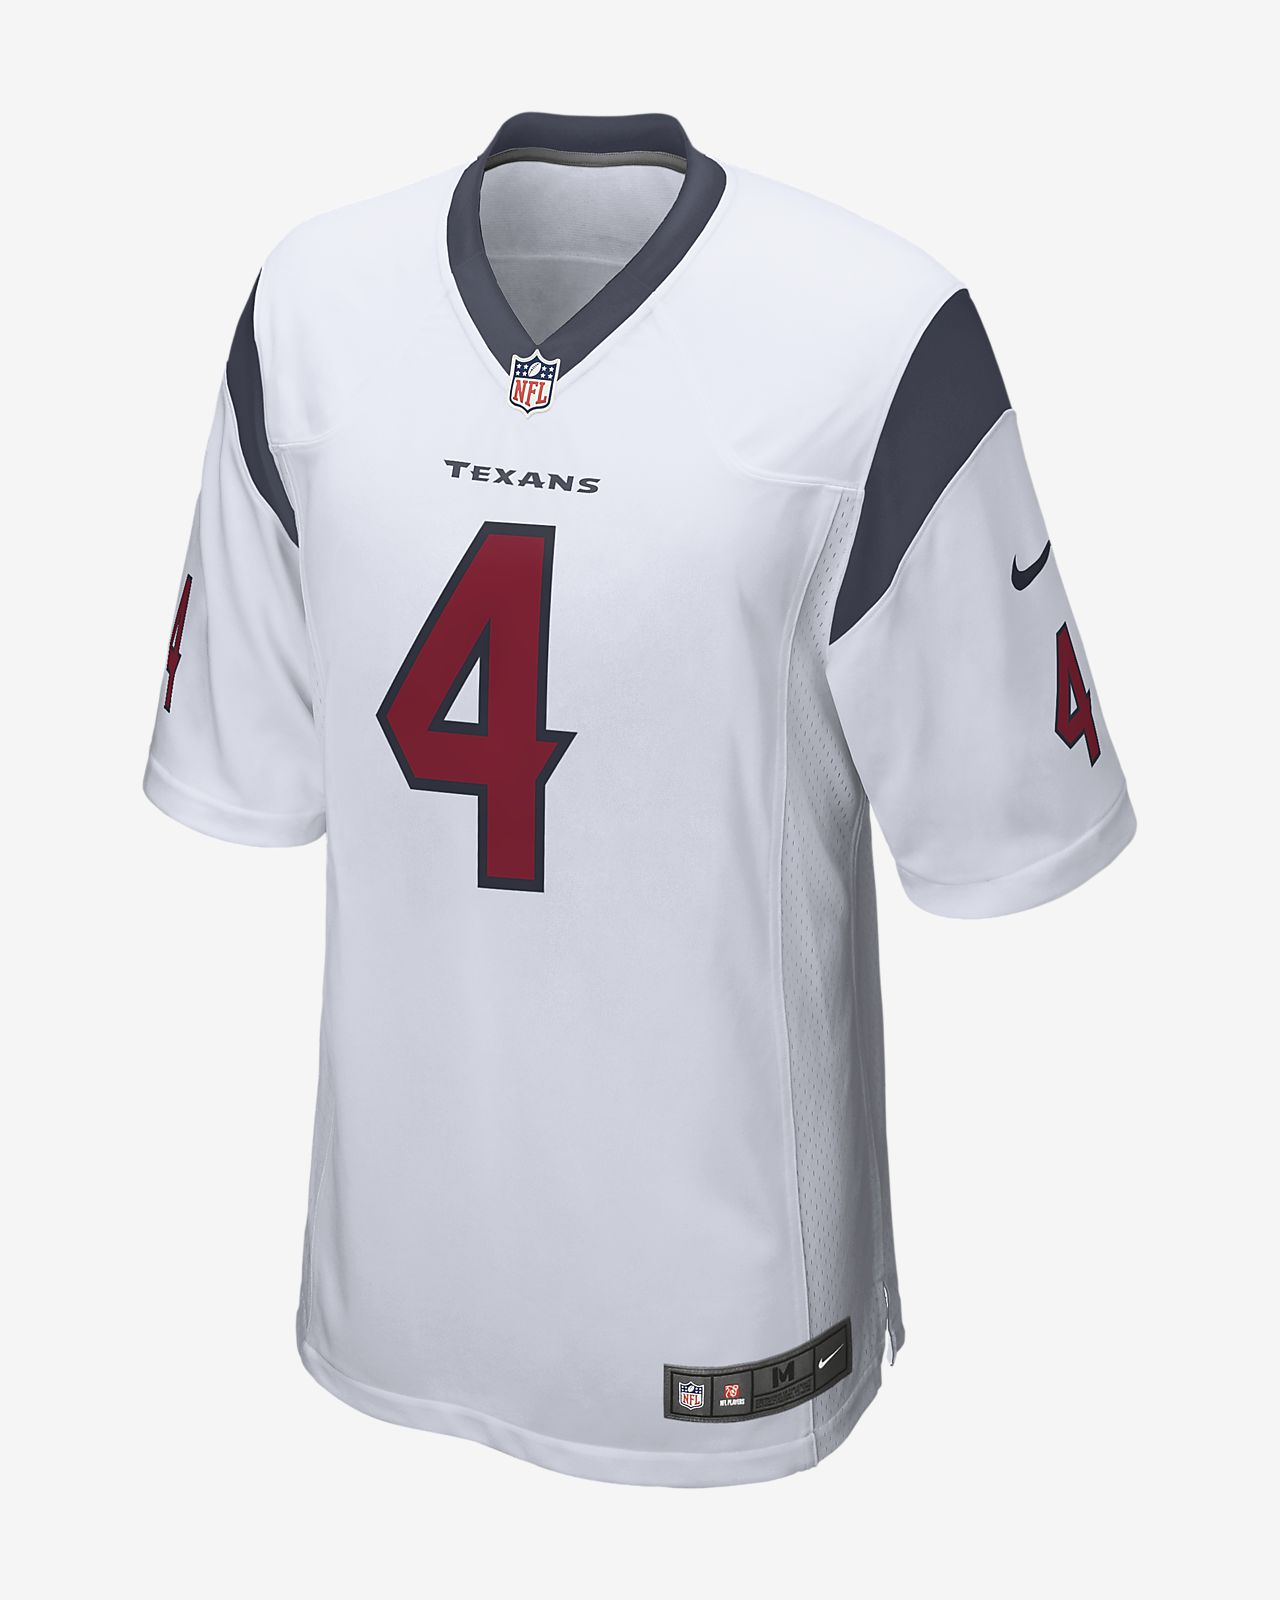 5961211eb772 NFL Houston Texans Game (Deshaun Watson) Men s Football Jersey. Nike.com